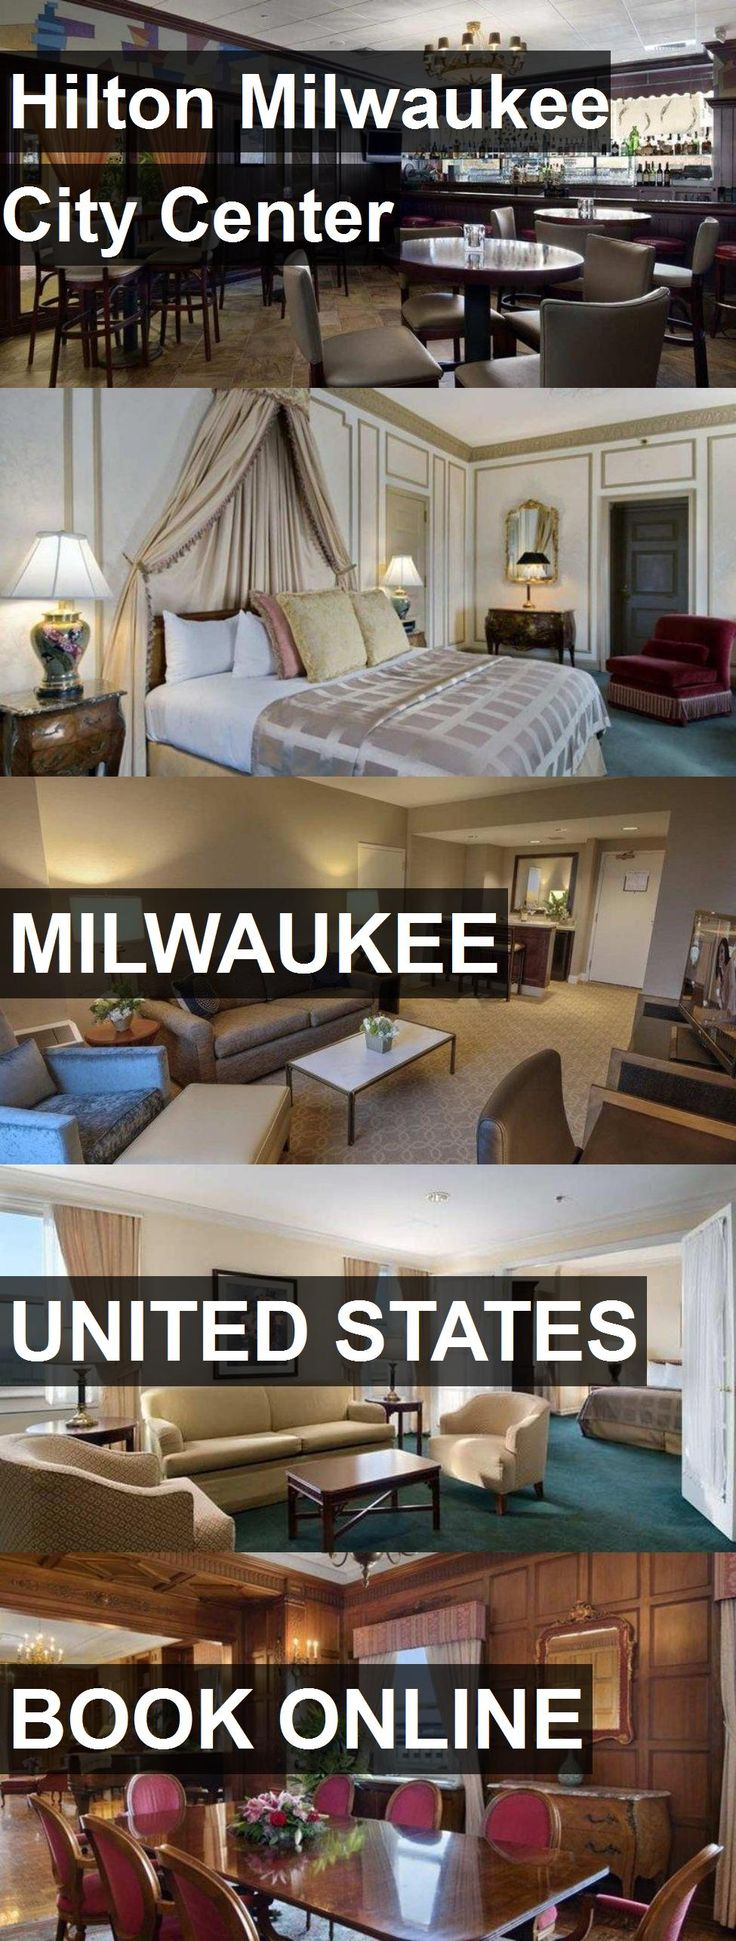 Hotel Hilton Milwaukee City Center in Milwaukee, United States. For more information, photos, reviews and best prices please follow the link. #UnitedStates #Milwaukee #travel #vacation #hotel